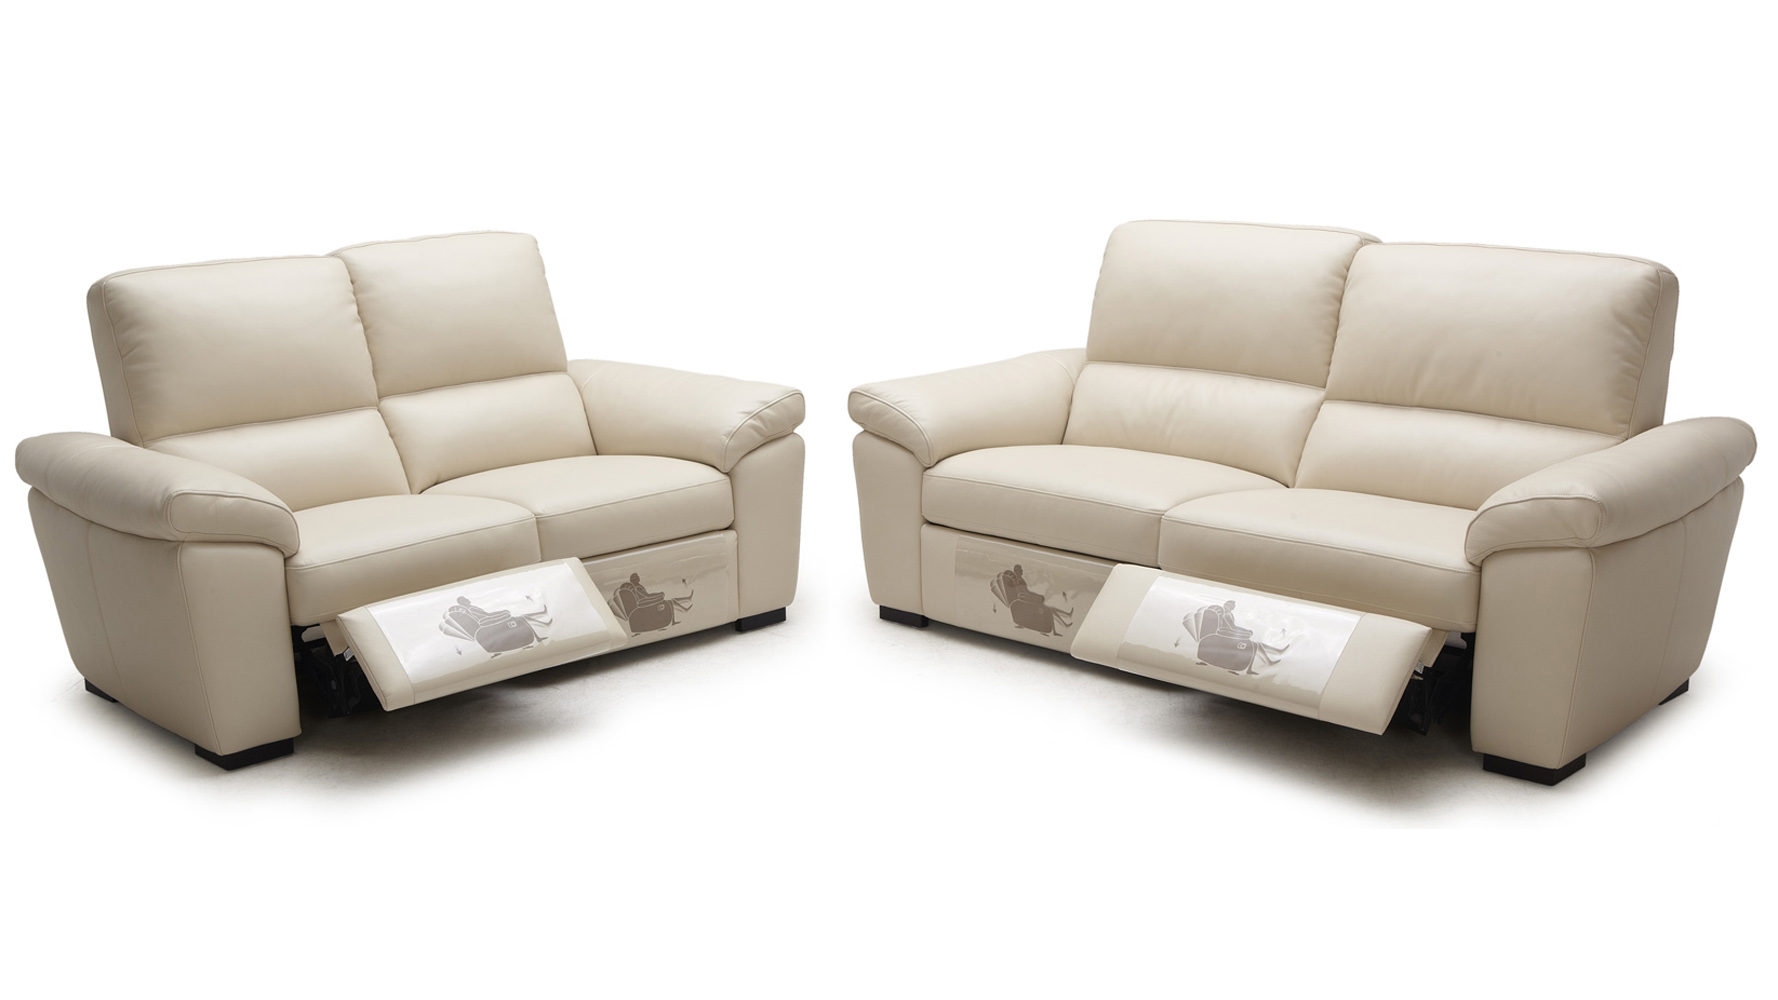 Beige Windsor Reclining Leather Sofa Set With Loveseat And